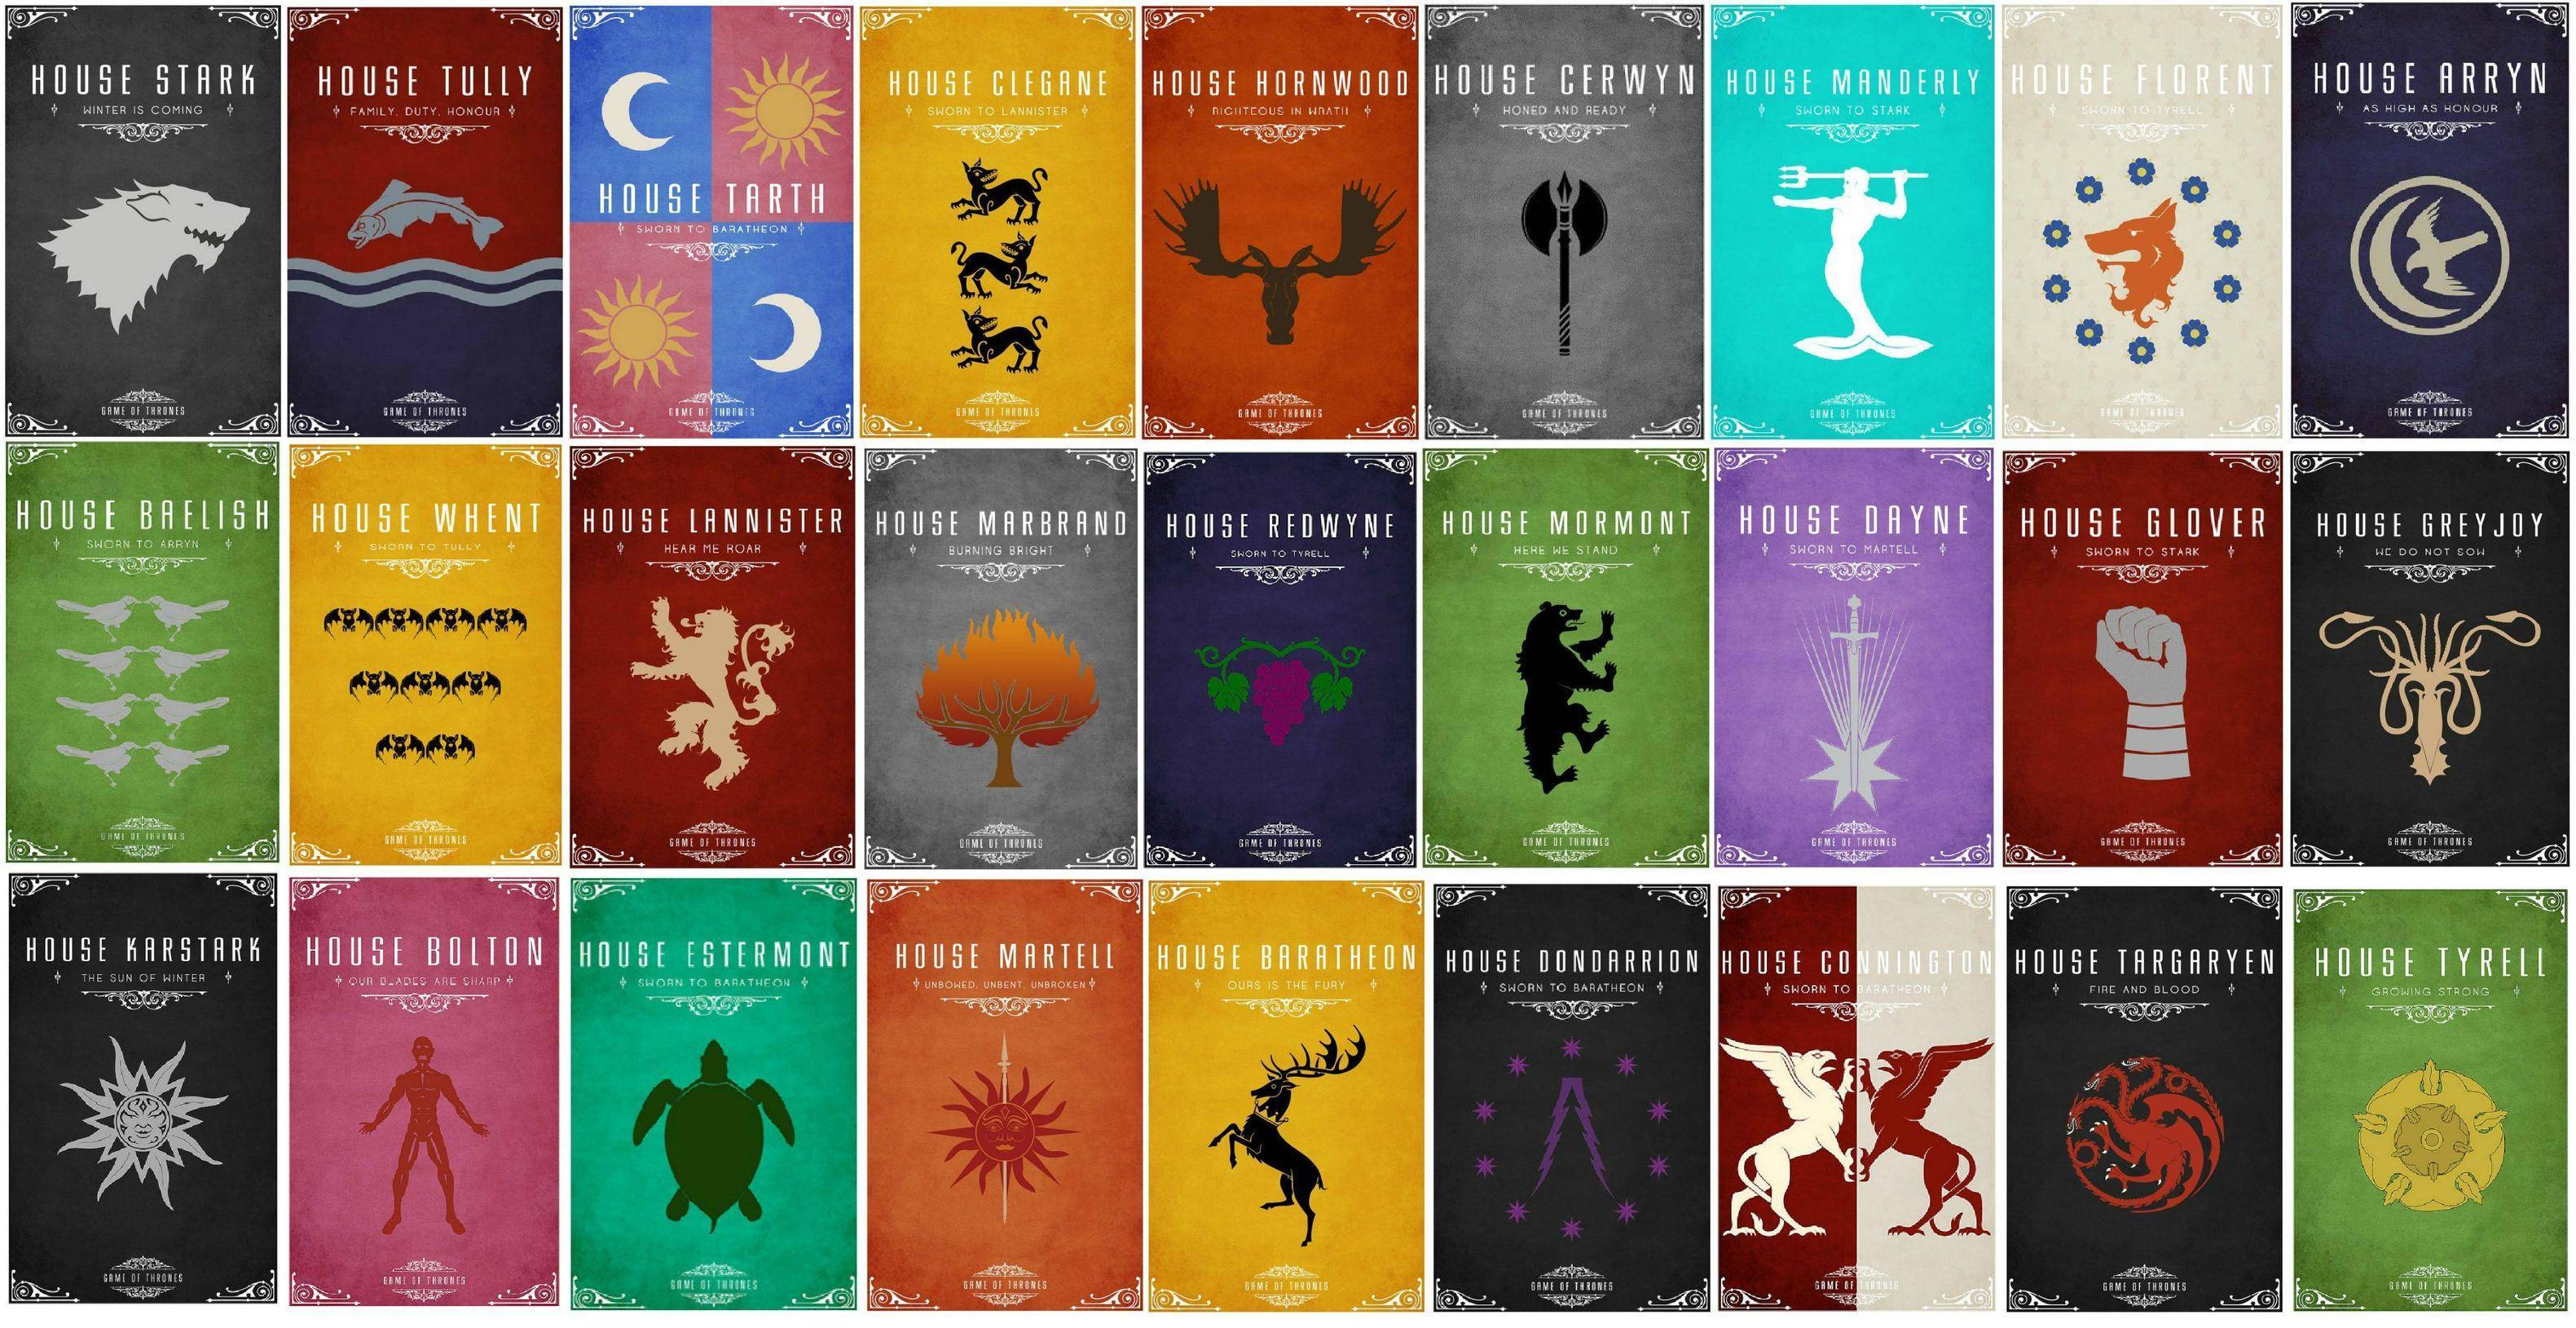 Game Of Thrones House Wallpapers Wallpapersafari